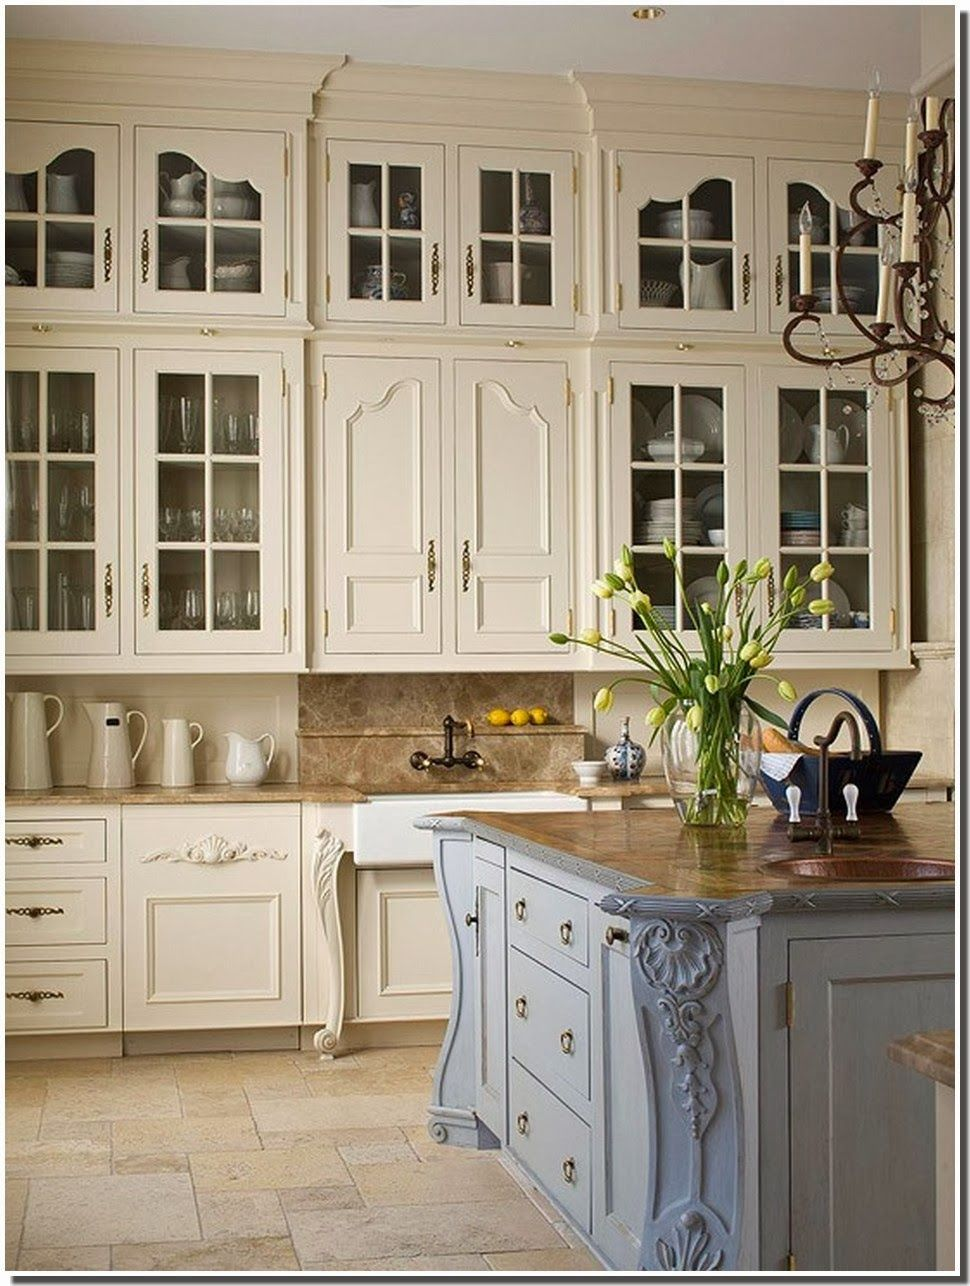 French country kitchen cuisine rustique kitchen ideas in